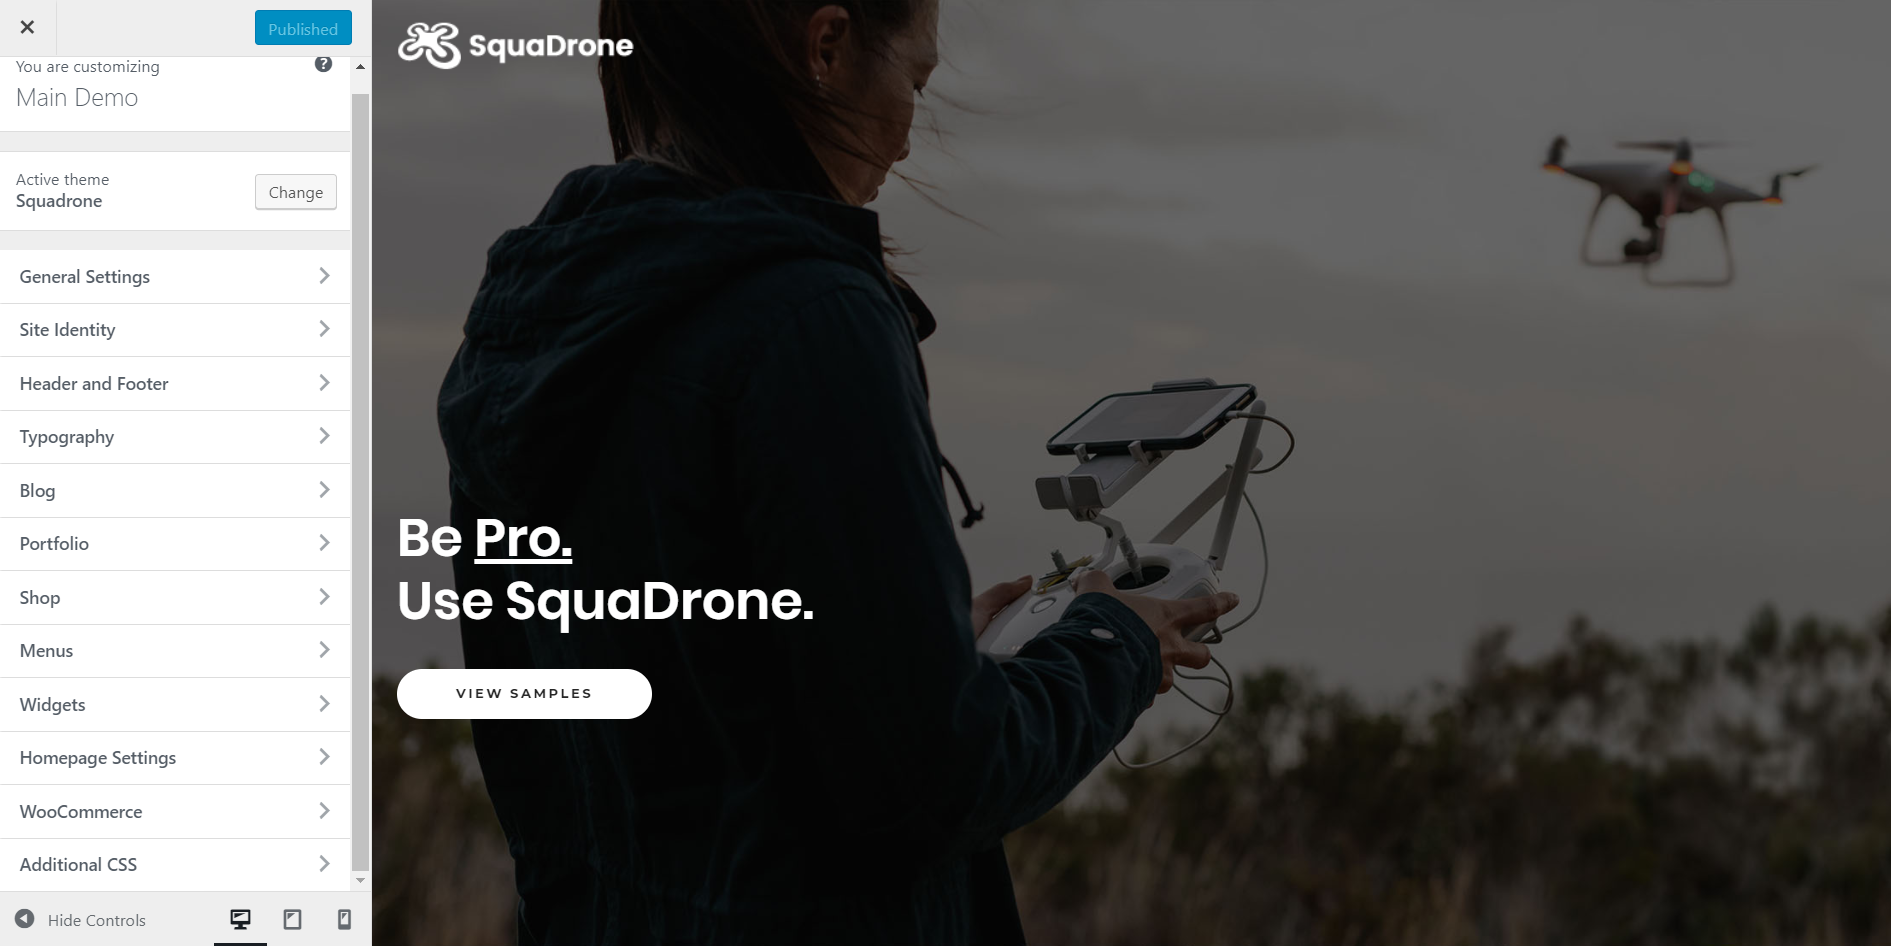 https://documentation.bold-themes.com/squadrone/wp-content/uploads/sites/29/2018/02/customization-1.png